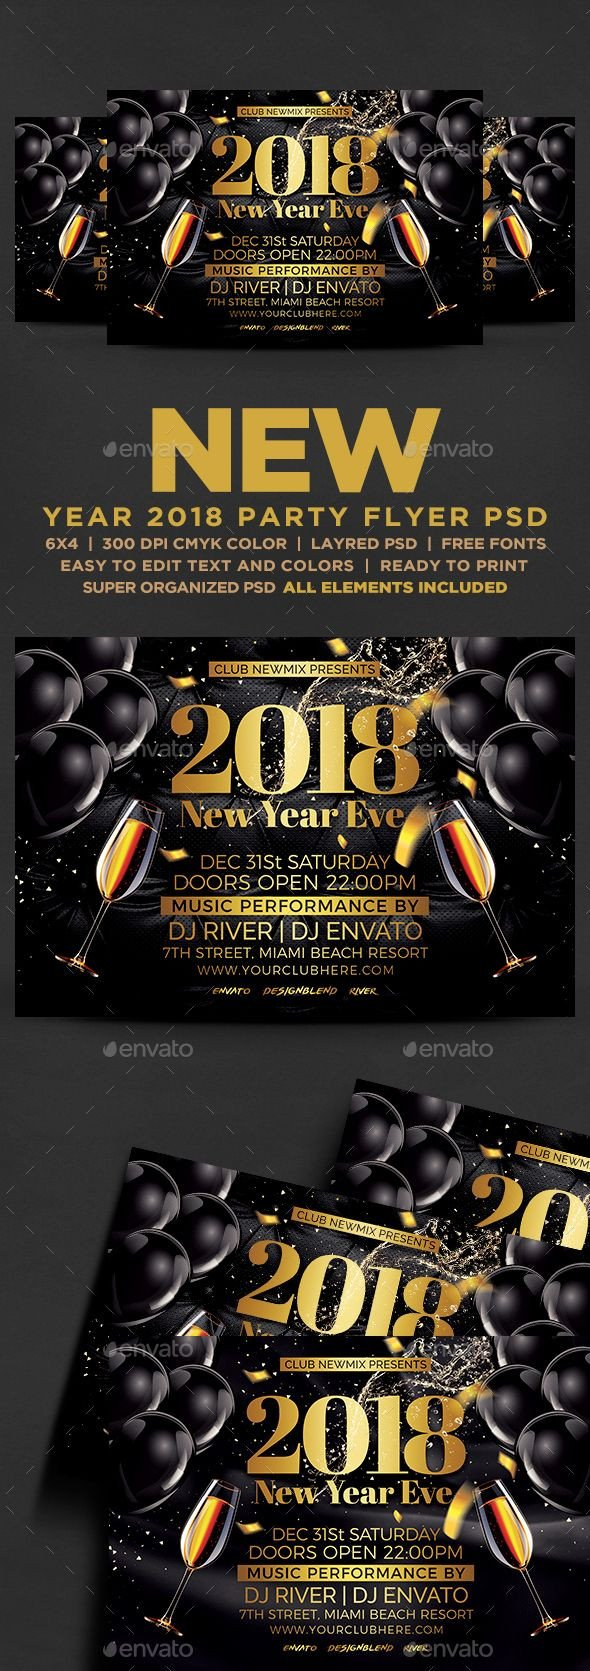 New Year Eve Flyer 2018 New Year Eve Flyer events Flyers